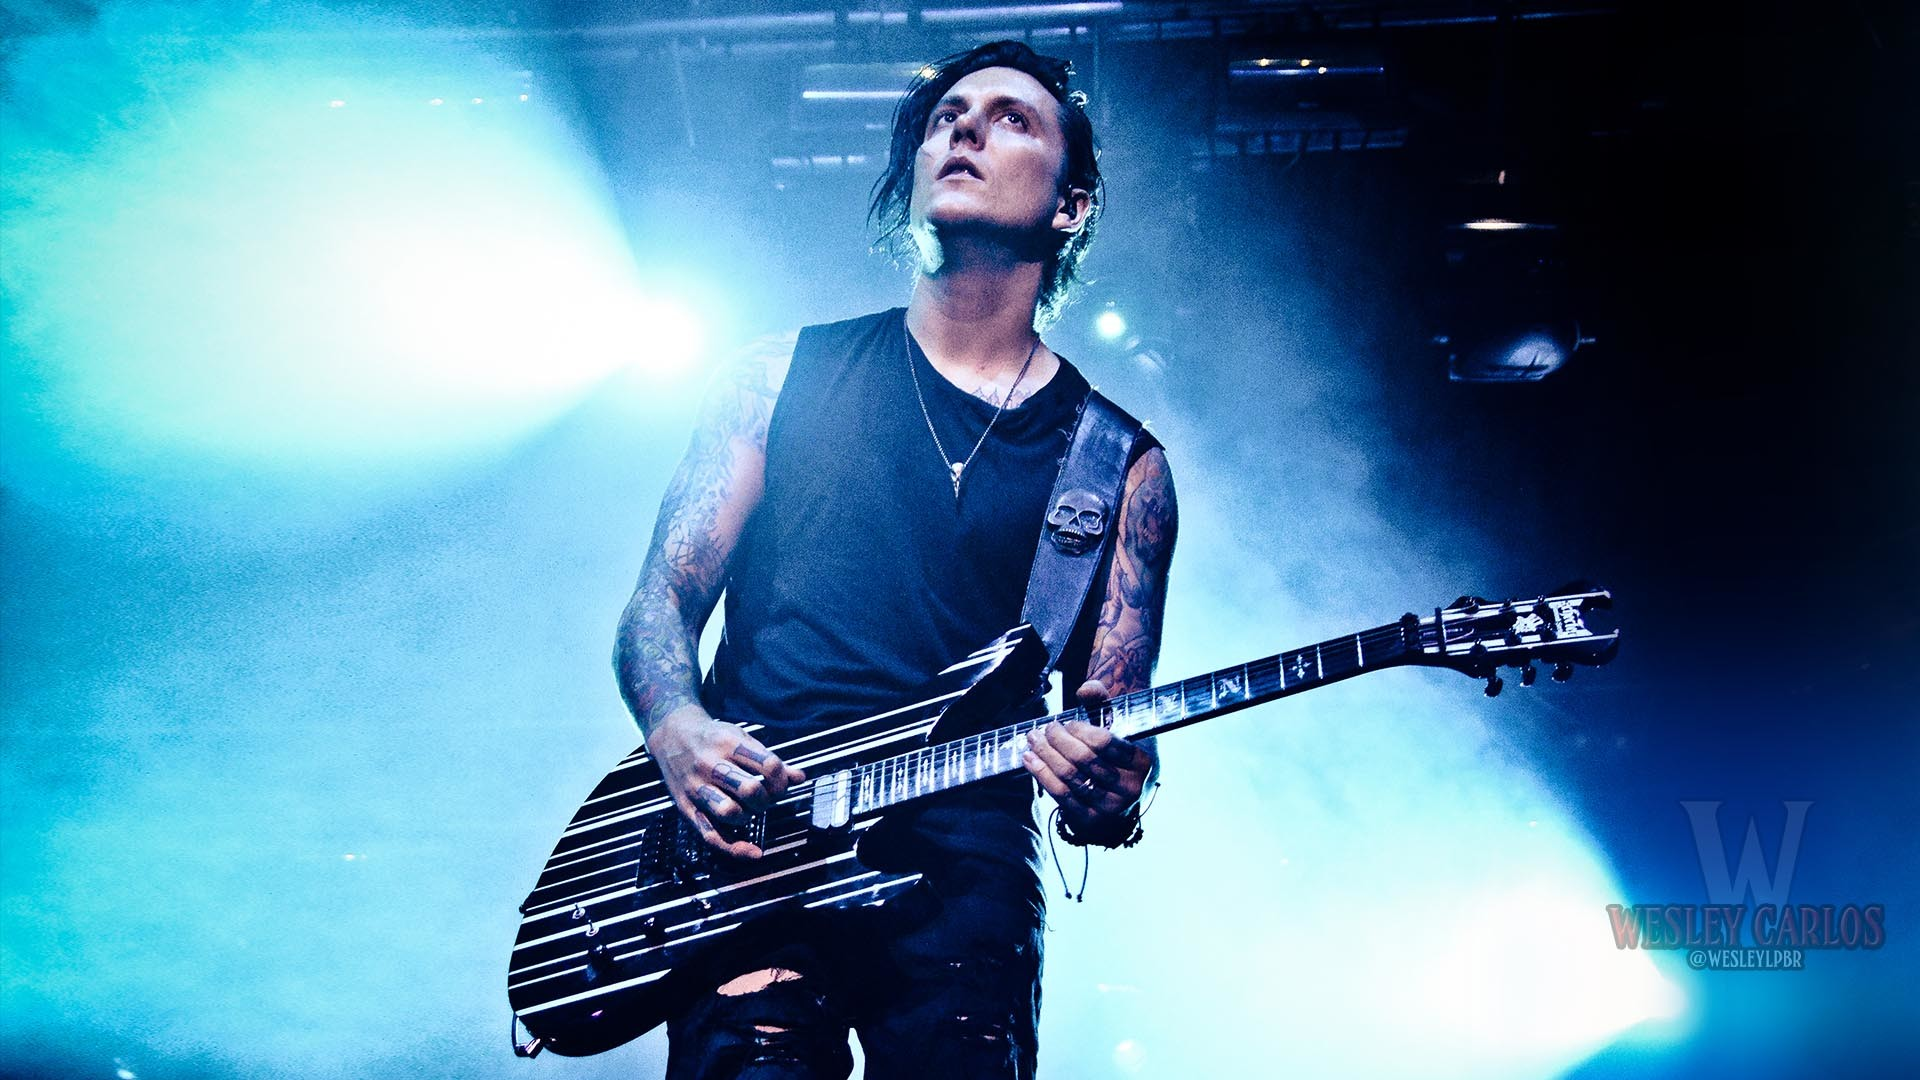 Rockstar Energy Wallpaper For Iphone Synyster Gates Wallpaper 183 ① Wallpapertag